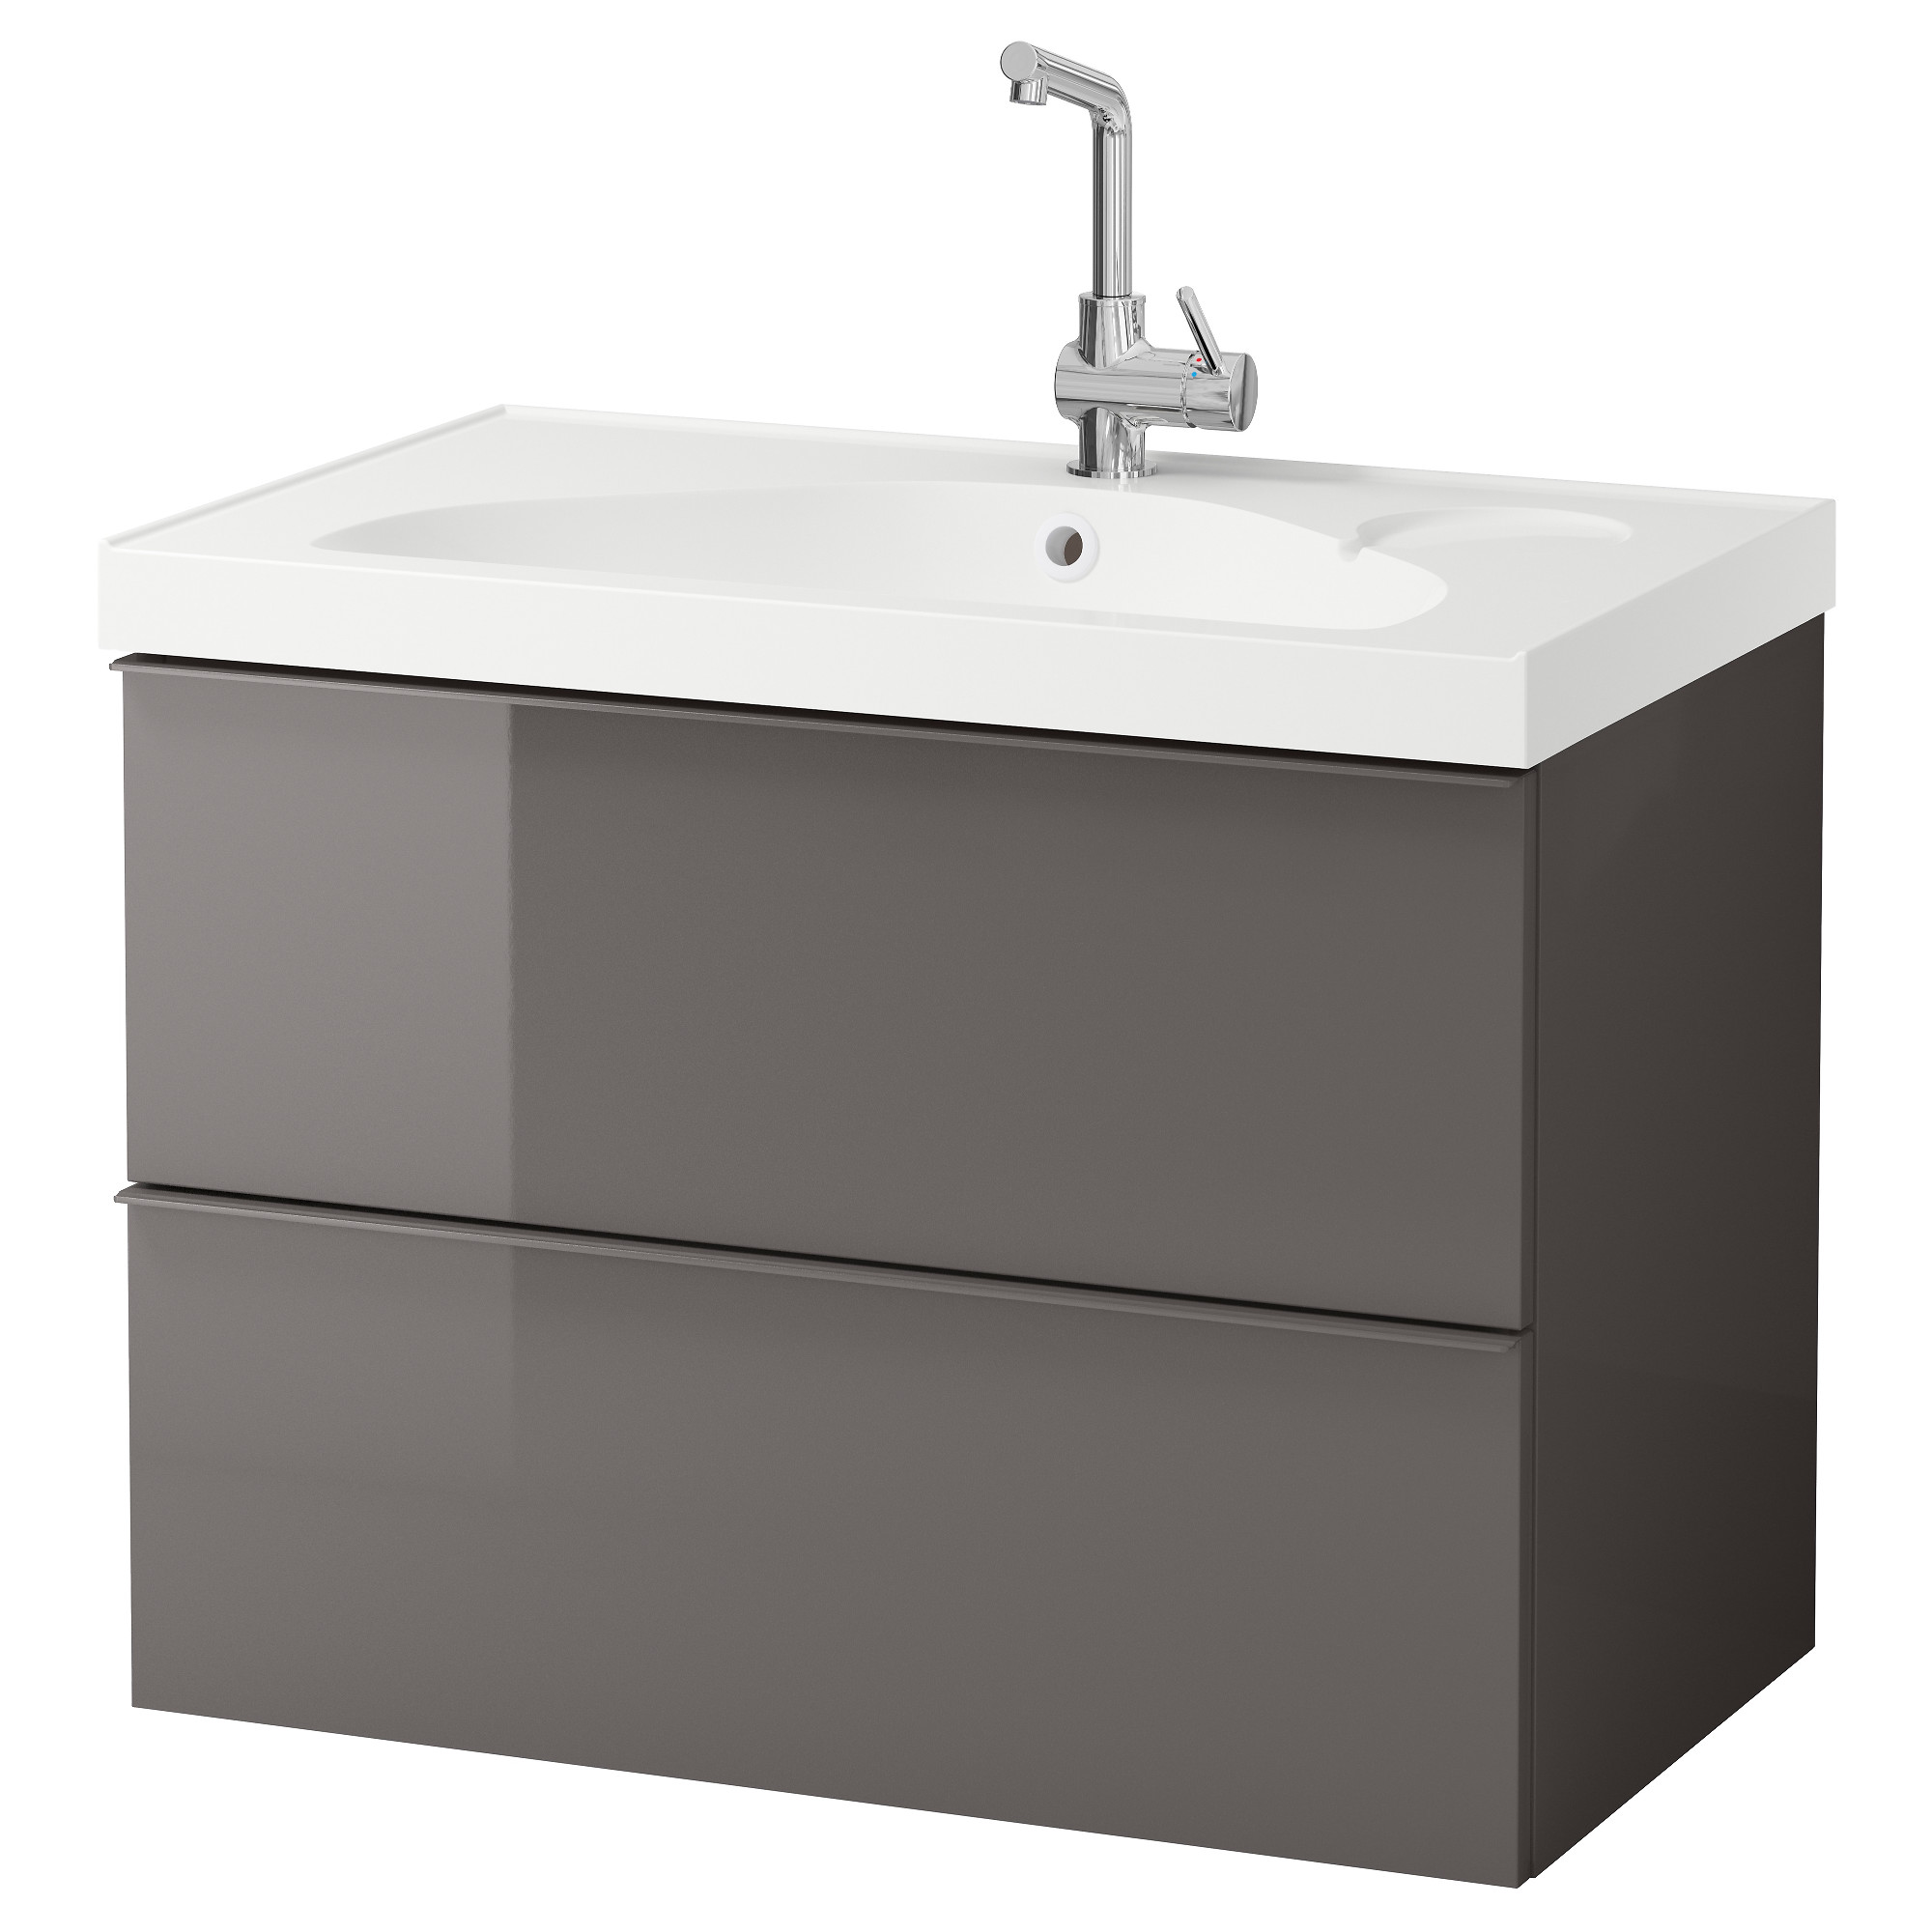 Bathroom sink cabinets white - Godmorgon Edeboviken Sink Cabinet With 2 Drawers High Gloss Gray Width 32 1